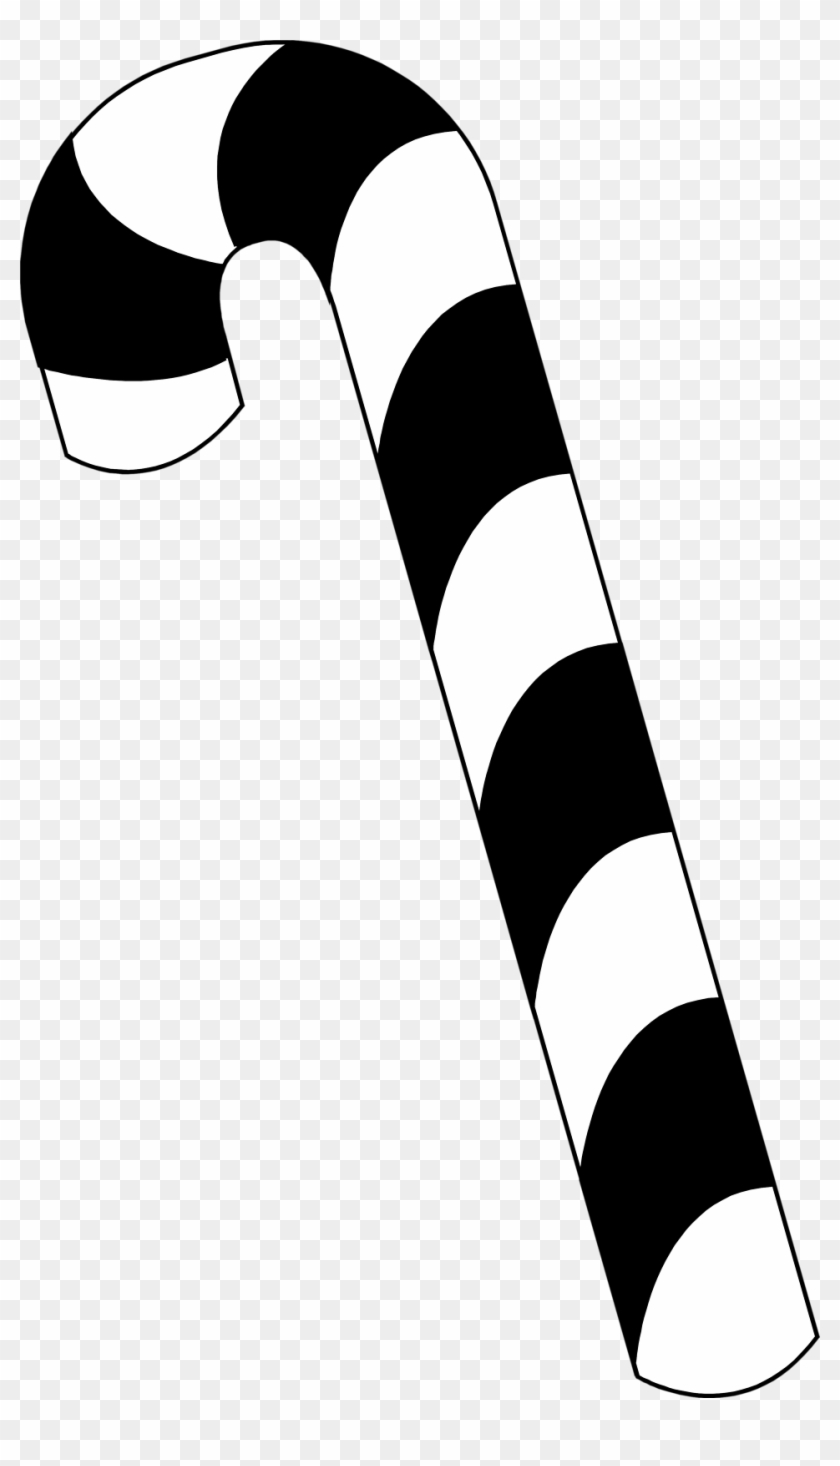 Candy Cane Clipart Black And White - Candy Cane Black And White #2267